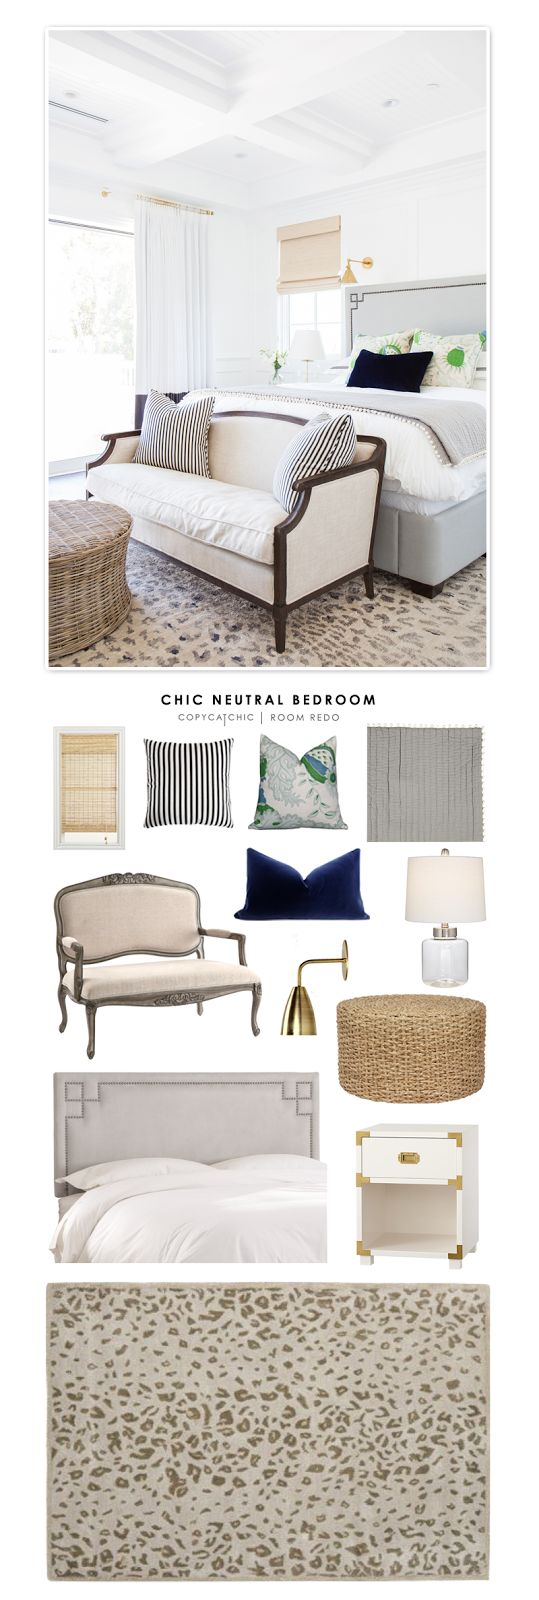 A Chic Neutral Bedroom by Studio McGee redesigned by Copy Cat Chic for under $3000.